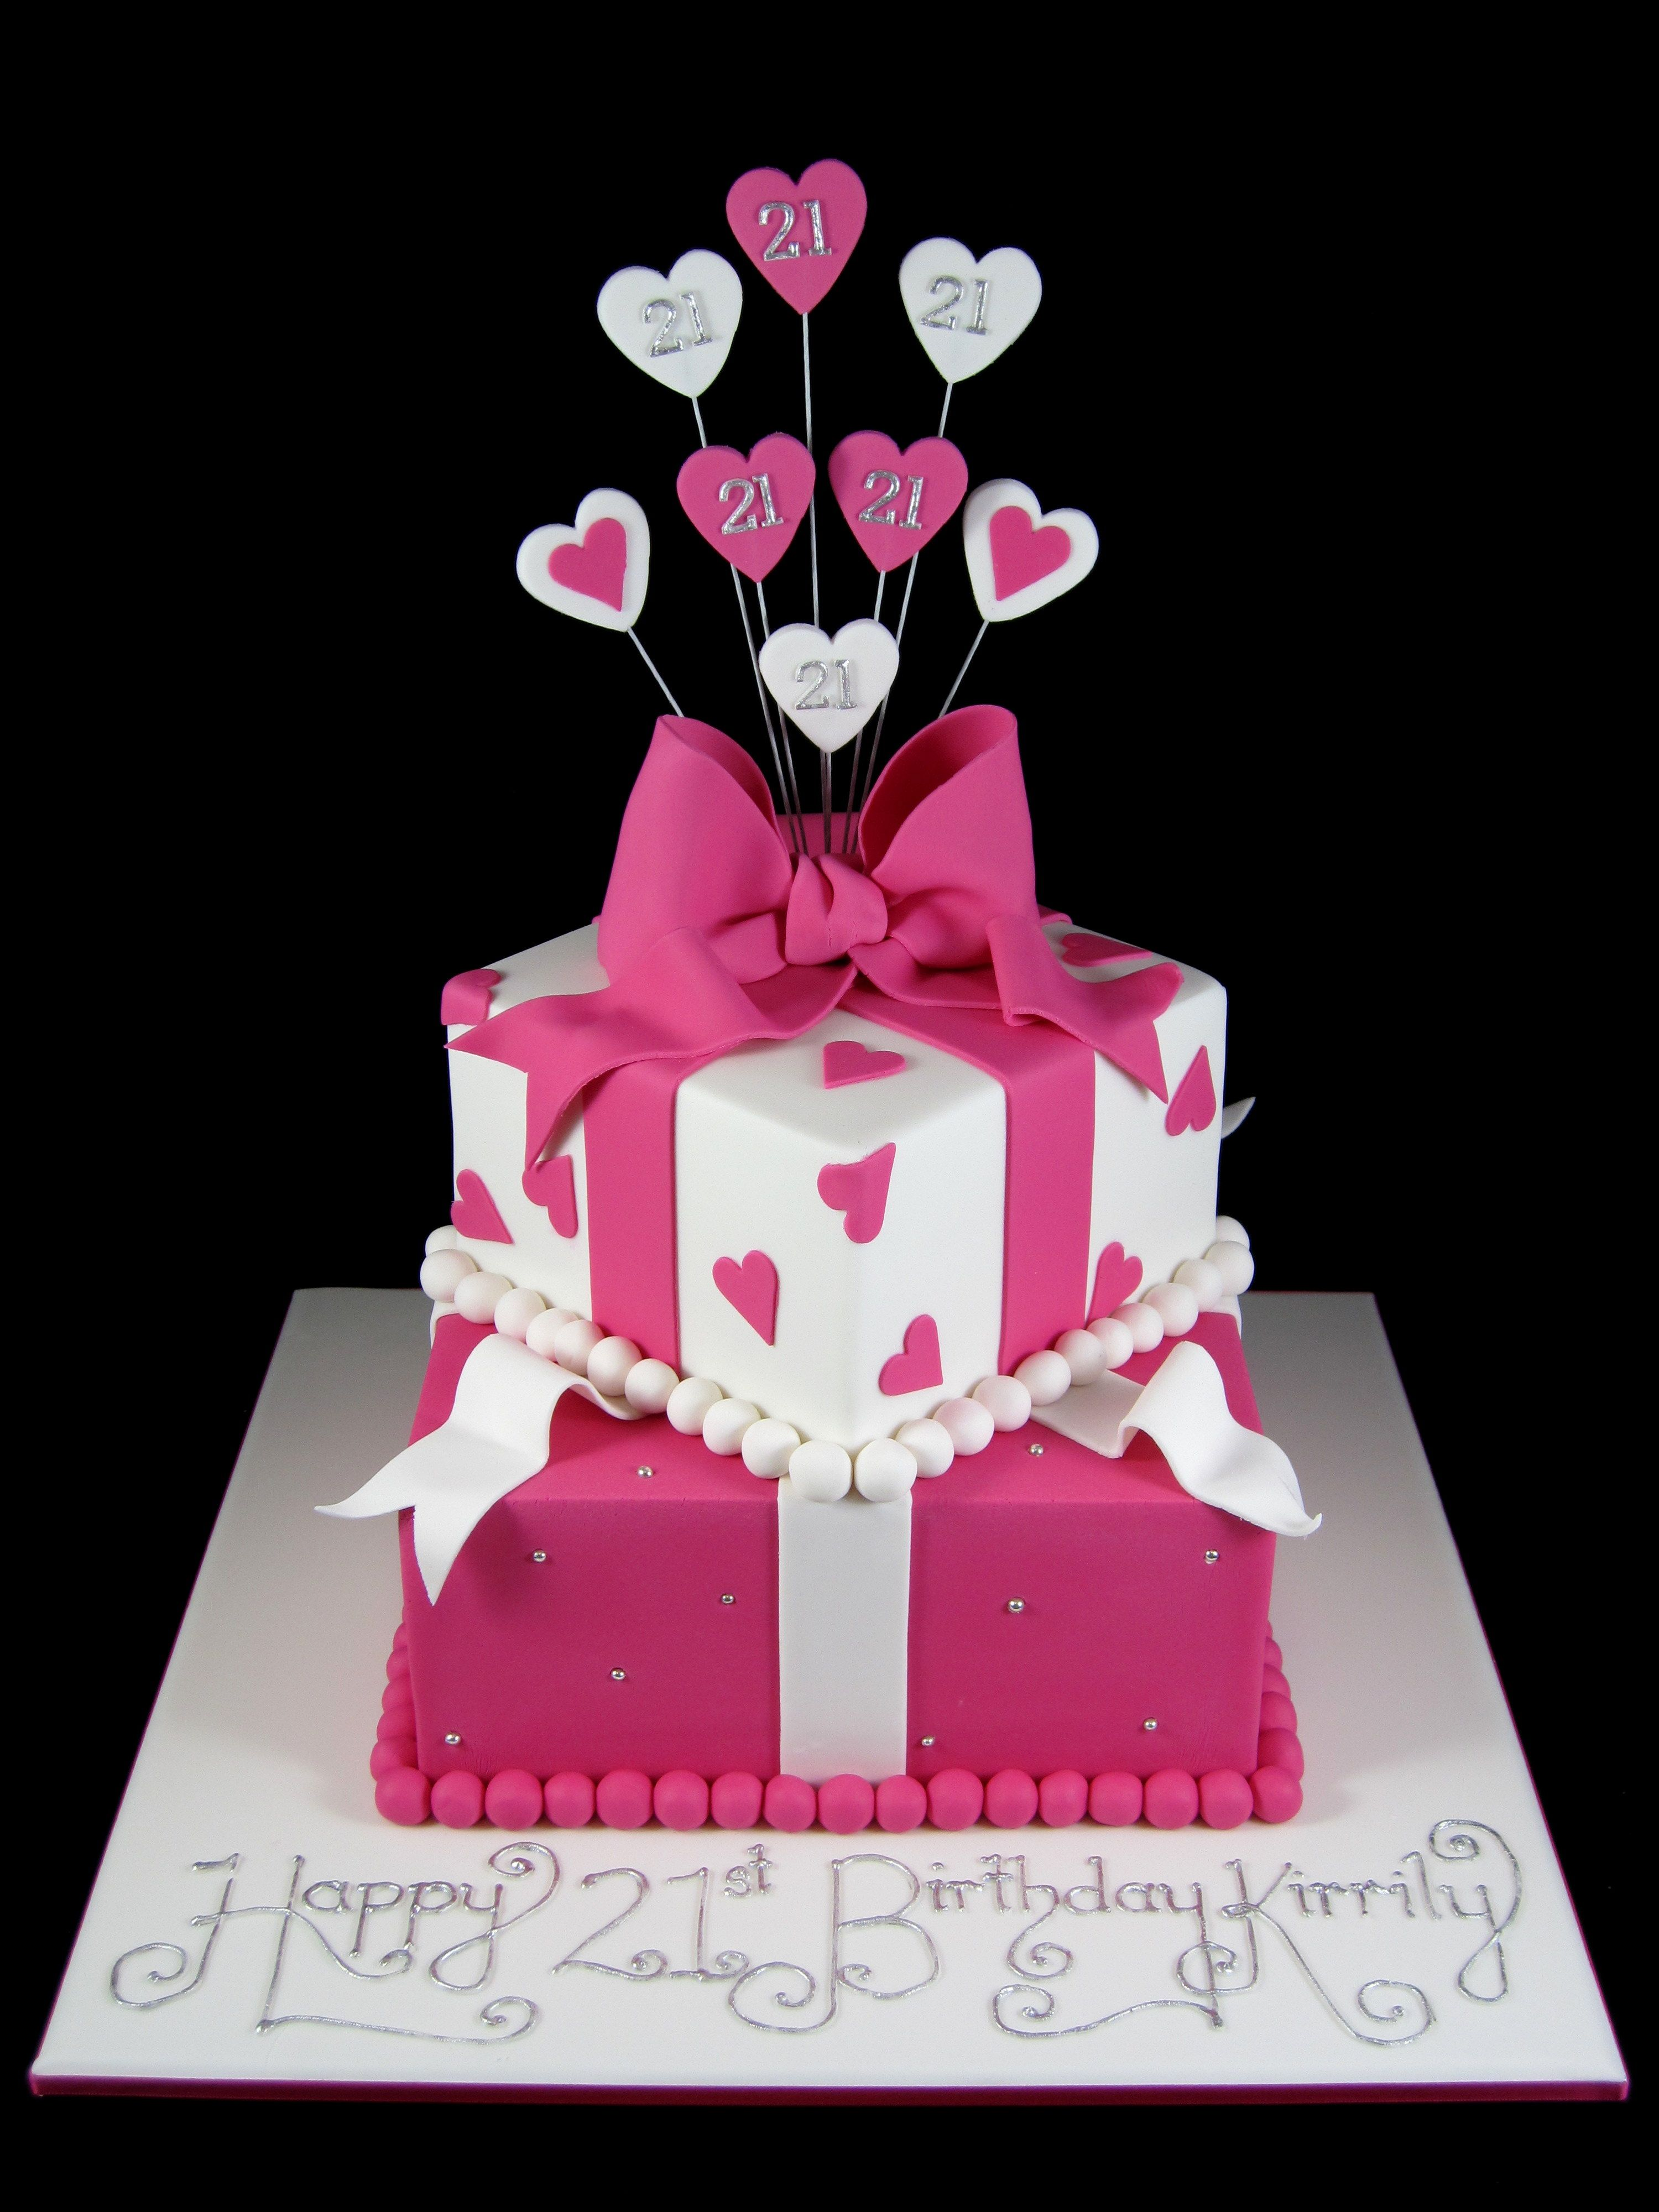 Pin by a sabih on cakes pinterest st birthday cakes birthday